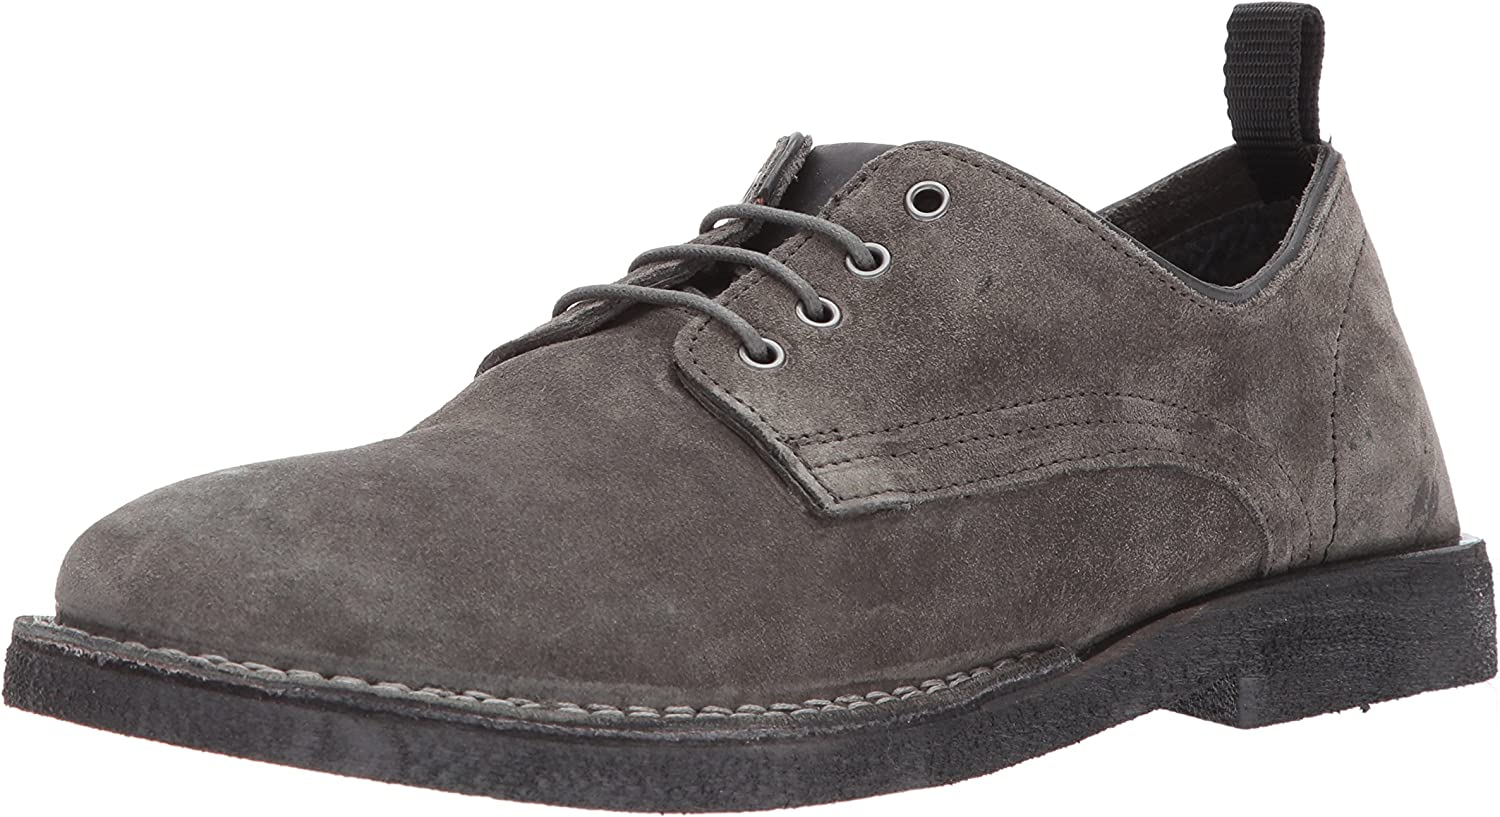 Steve Madden Men's Lowman Oxford, Dark Grey Suede, Suede, Suede, 10 US/US Size Conversion M US B06XYC5F4V  66c85c